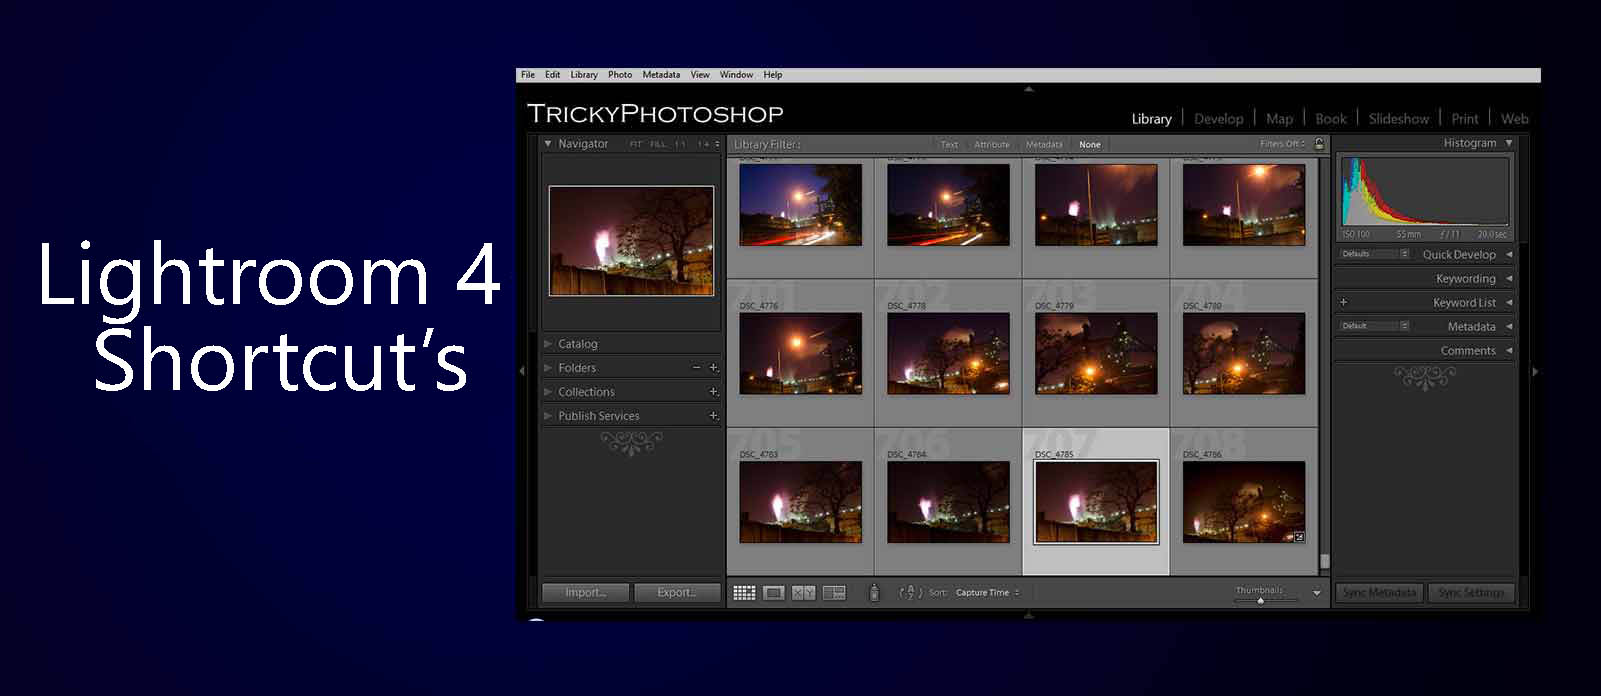 Learn Lightroom 4 Shortcut's | TrickyPhotoshop